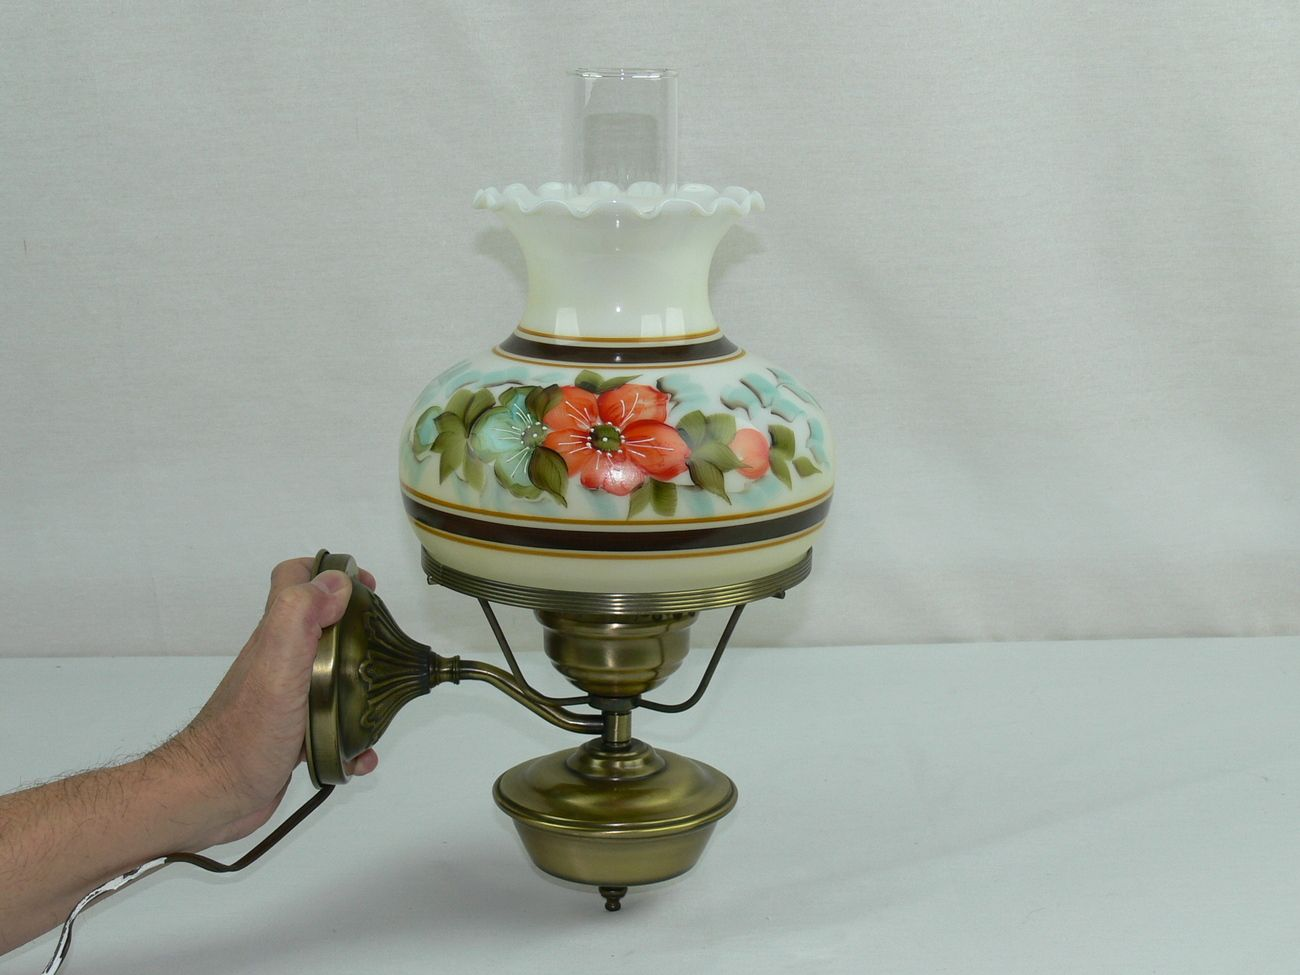 Vintage Electric Hurricane Lamp Wall Sconce With Floral Milk Glass Shade Hurricane Lamps Glass Shades Milk Glass